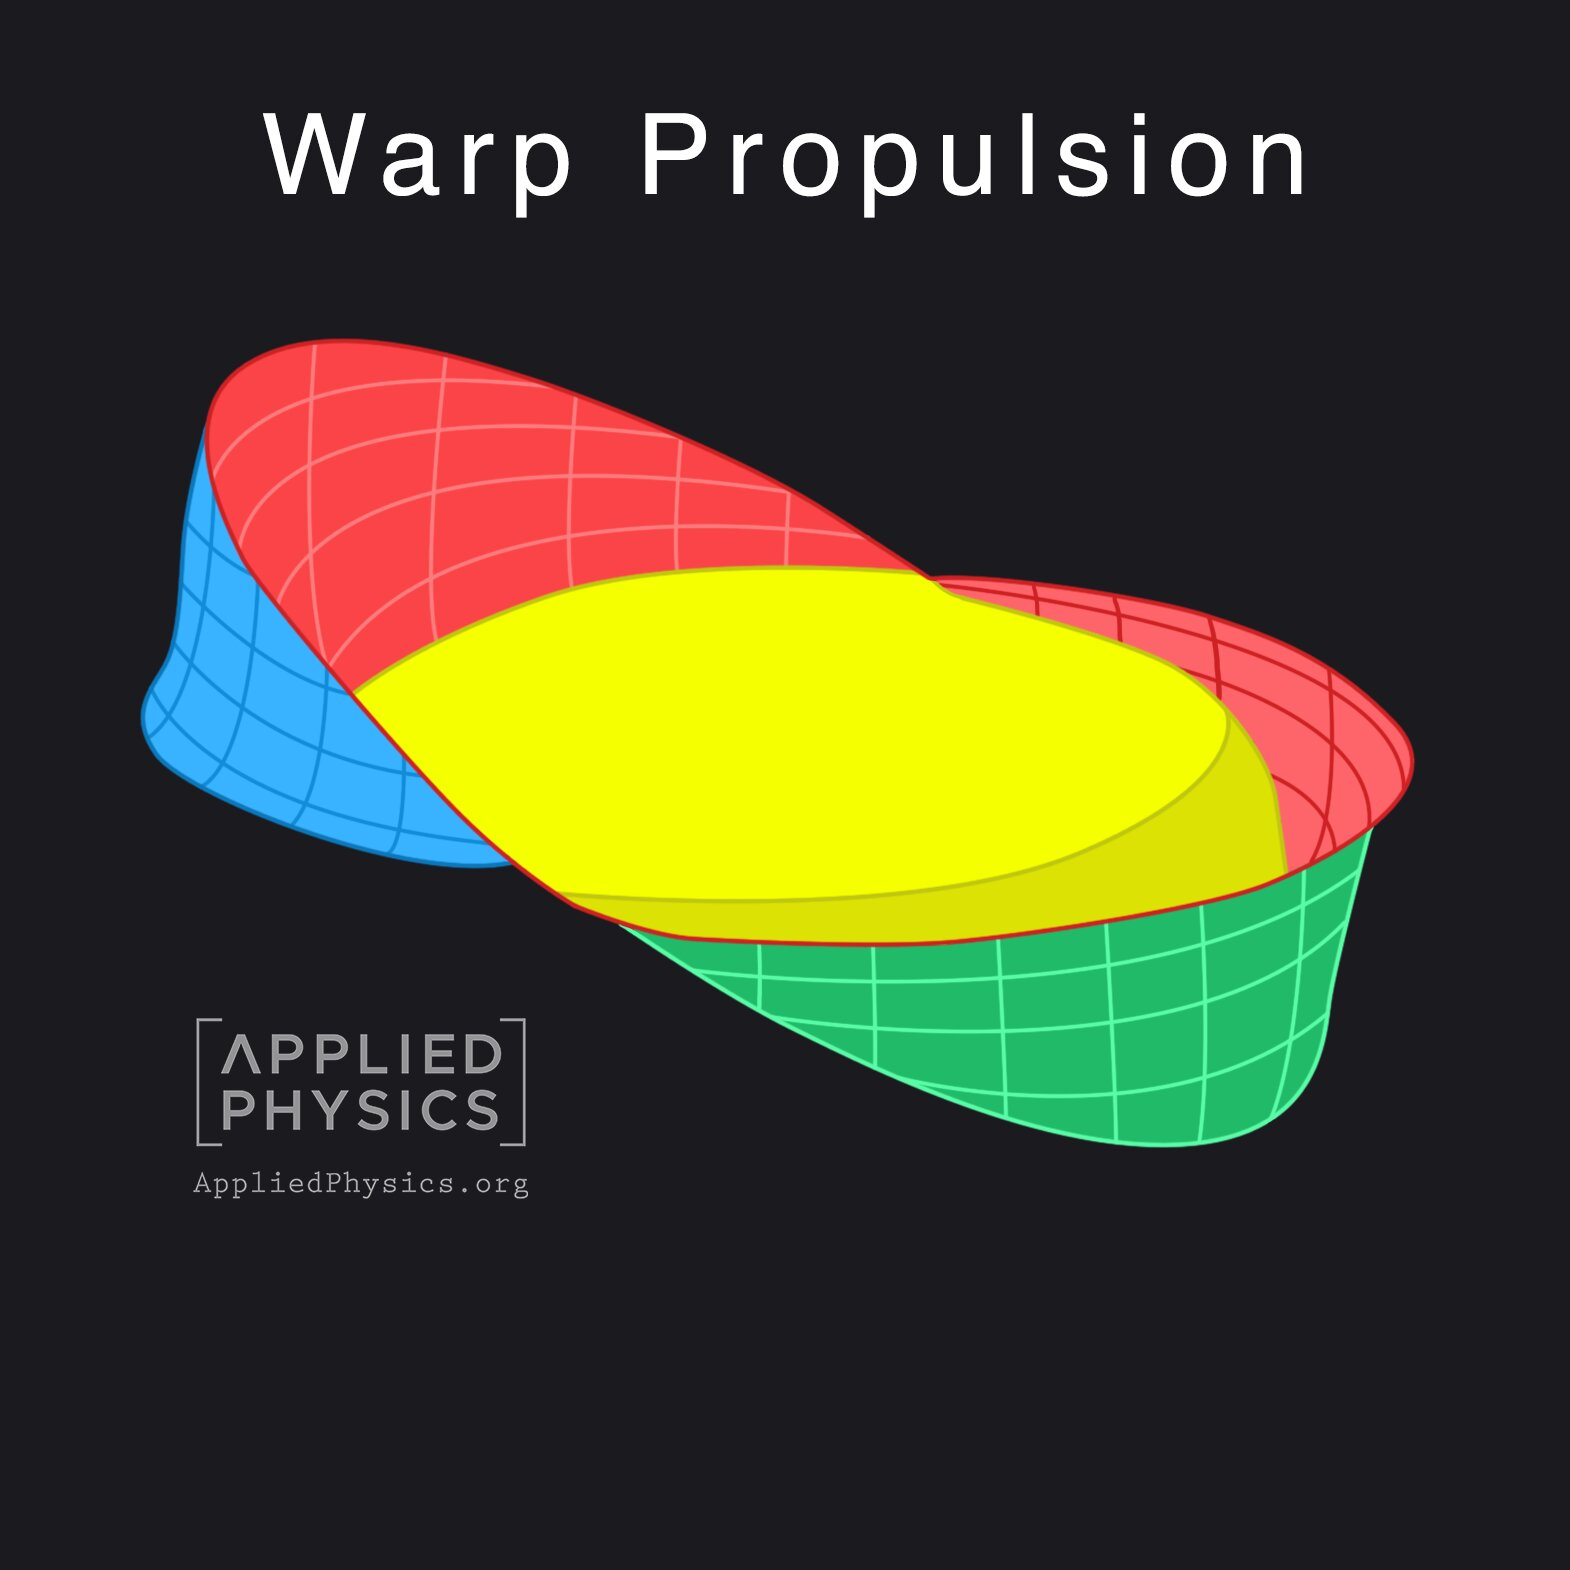 Potential model for real physical warp drive